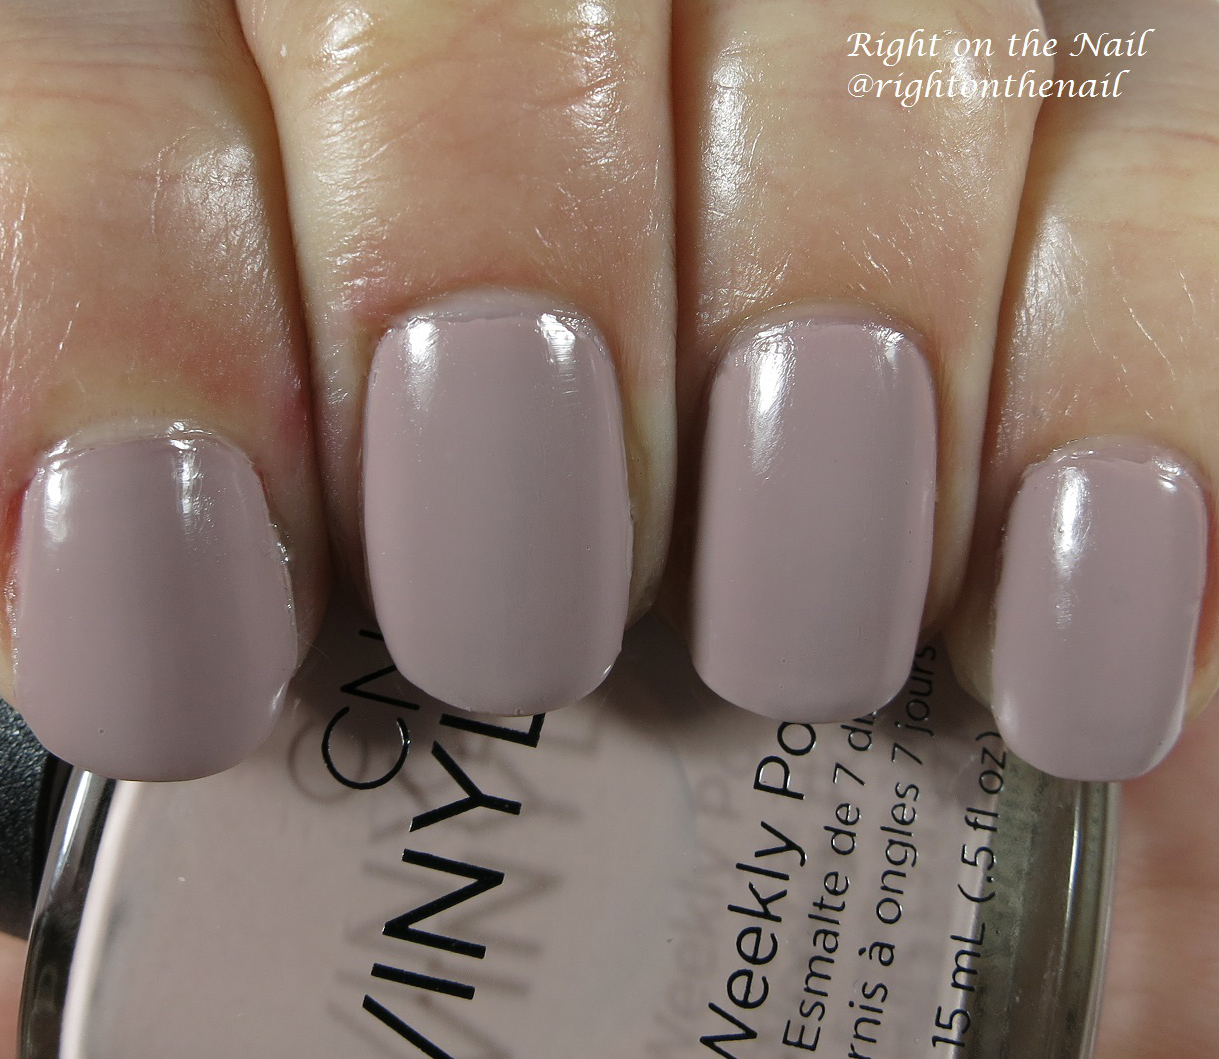 Cnd vinylux nail polish swatches nail ftempo for Accent styling salon gainesville